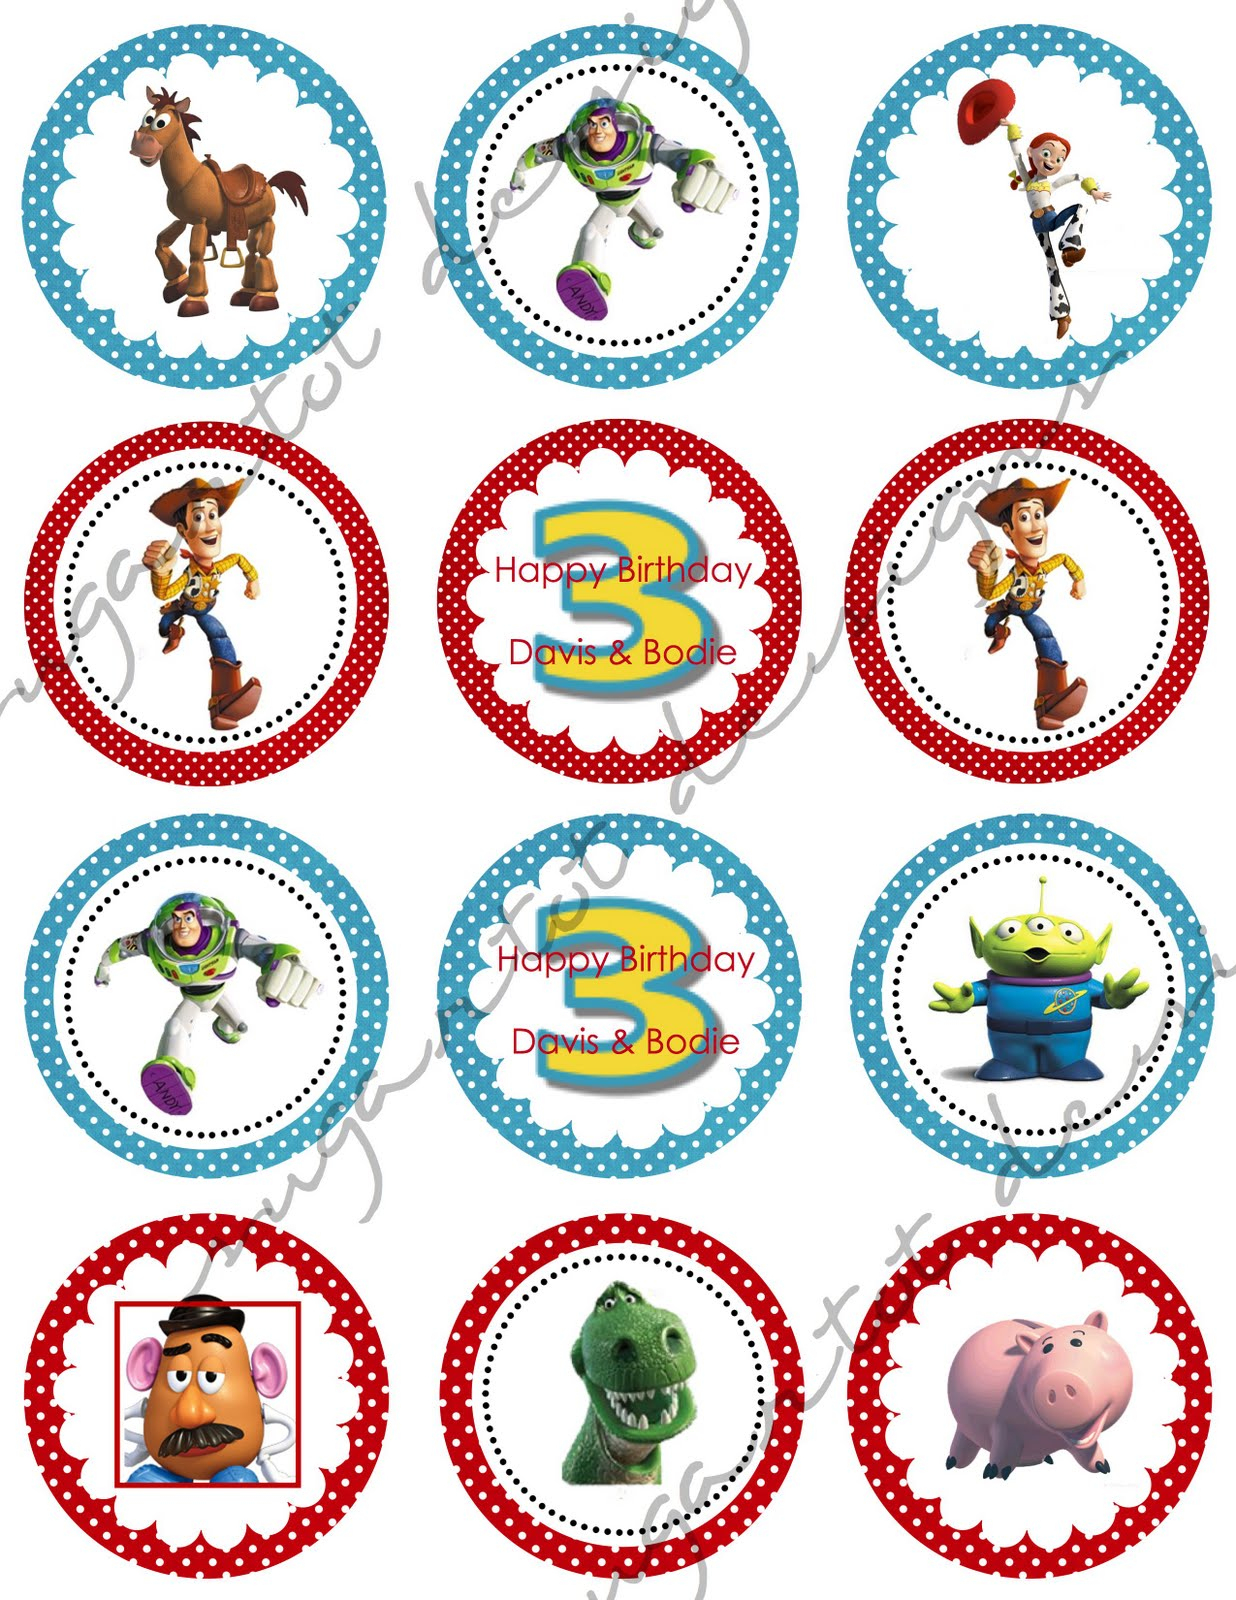 Sugartotdesigns: Toy Story 3 Party Invitations & Cupcake Toppers - Free Printable Toy Story 3 Birthday Invitations